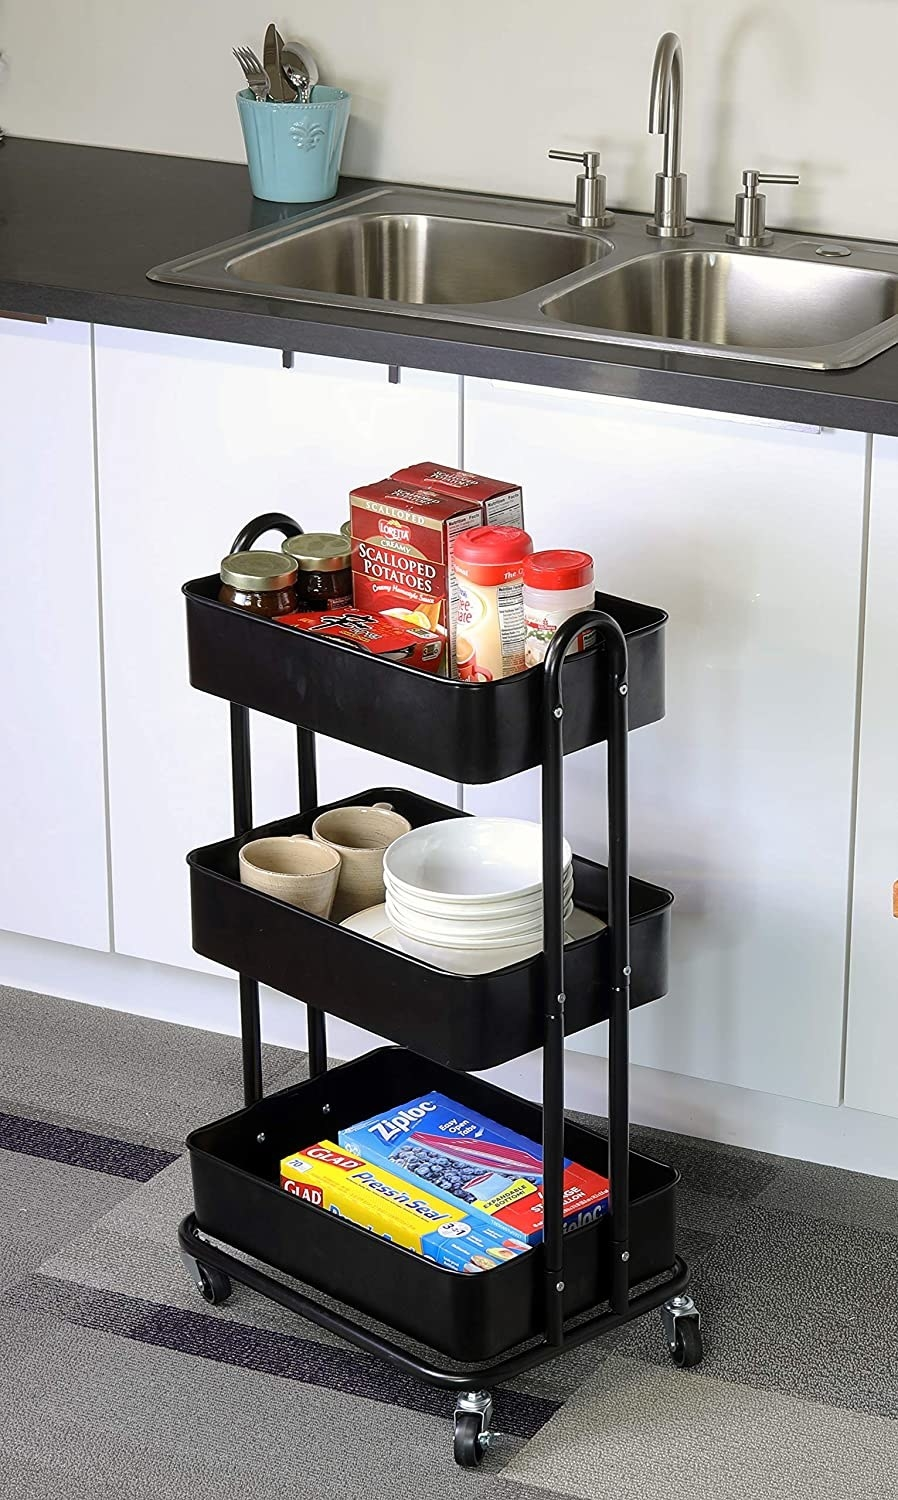 the cart in a kitchen with kitchen stuff in it like bowls and Ziploc bags